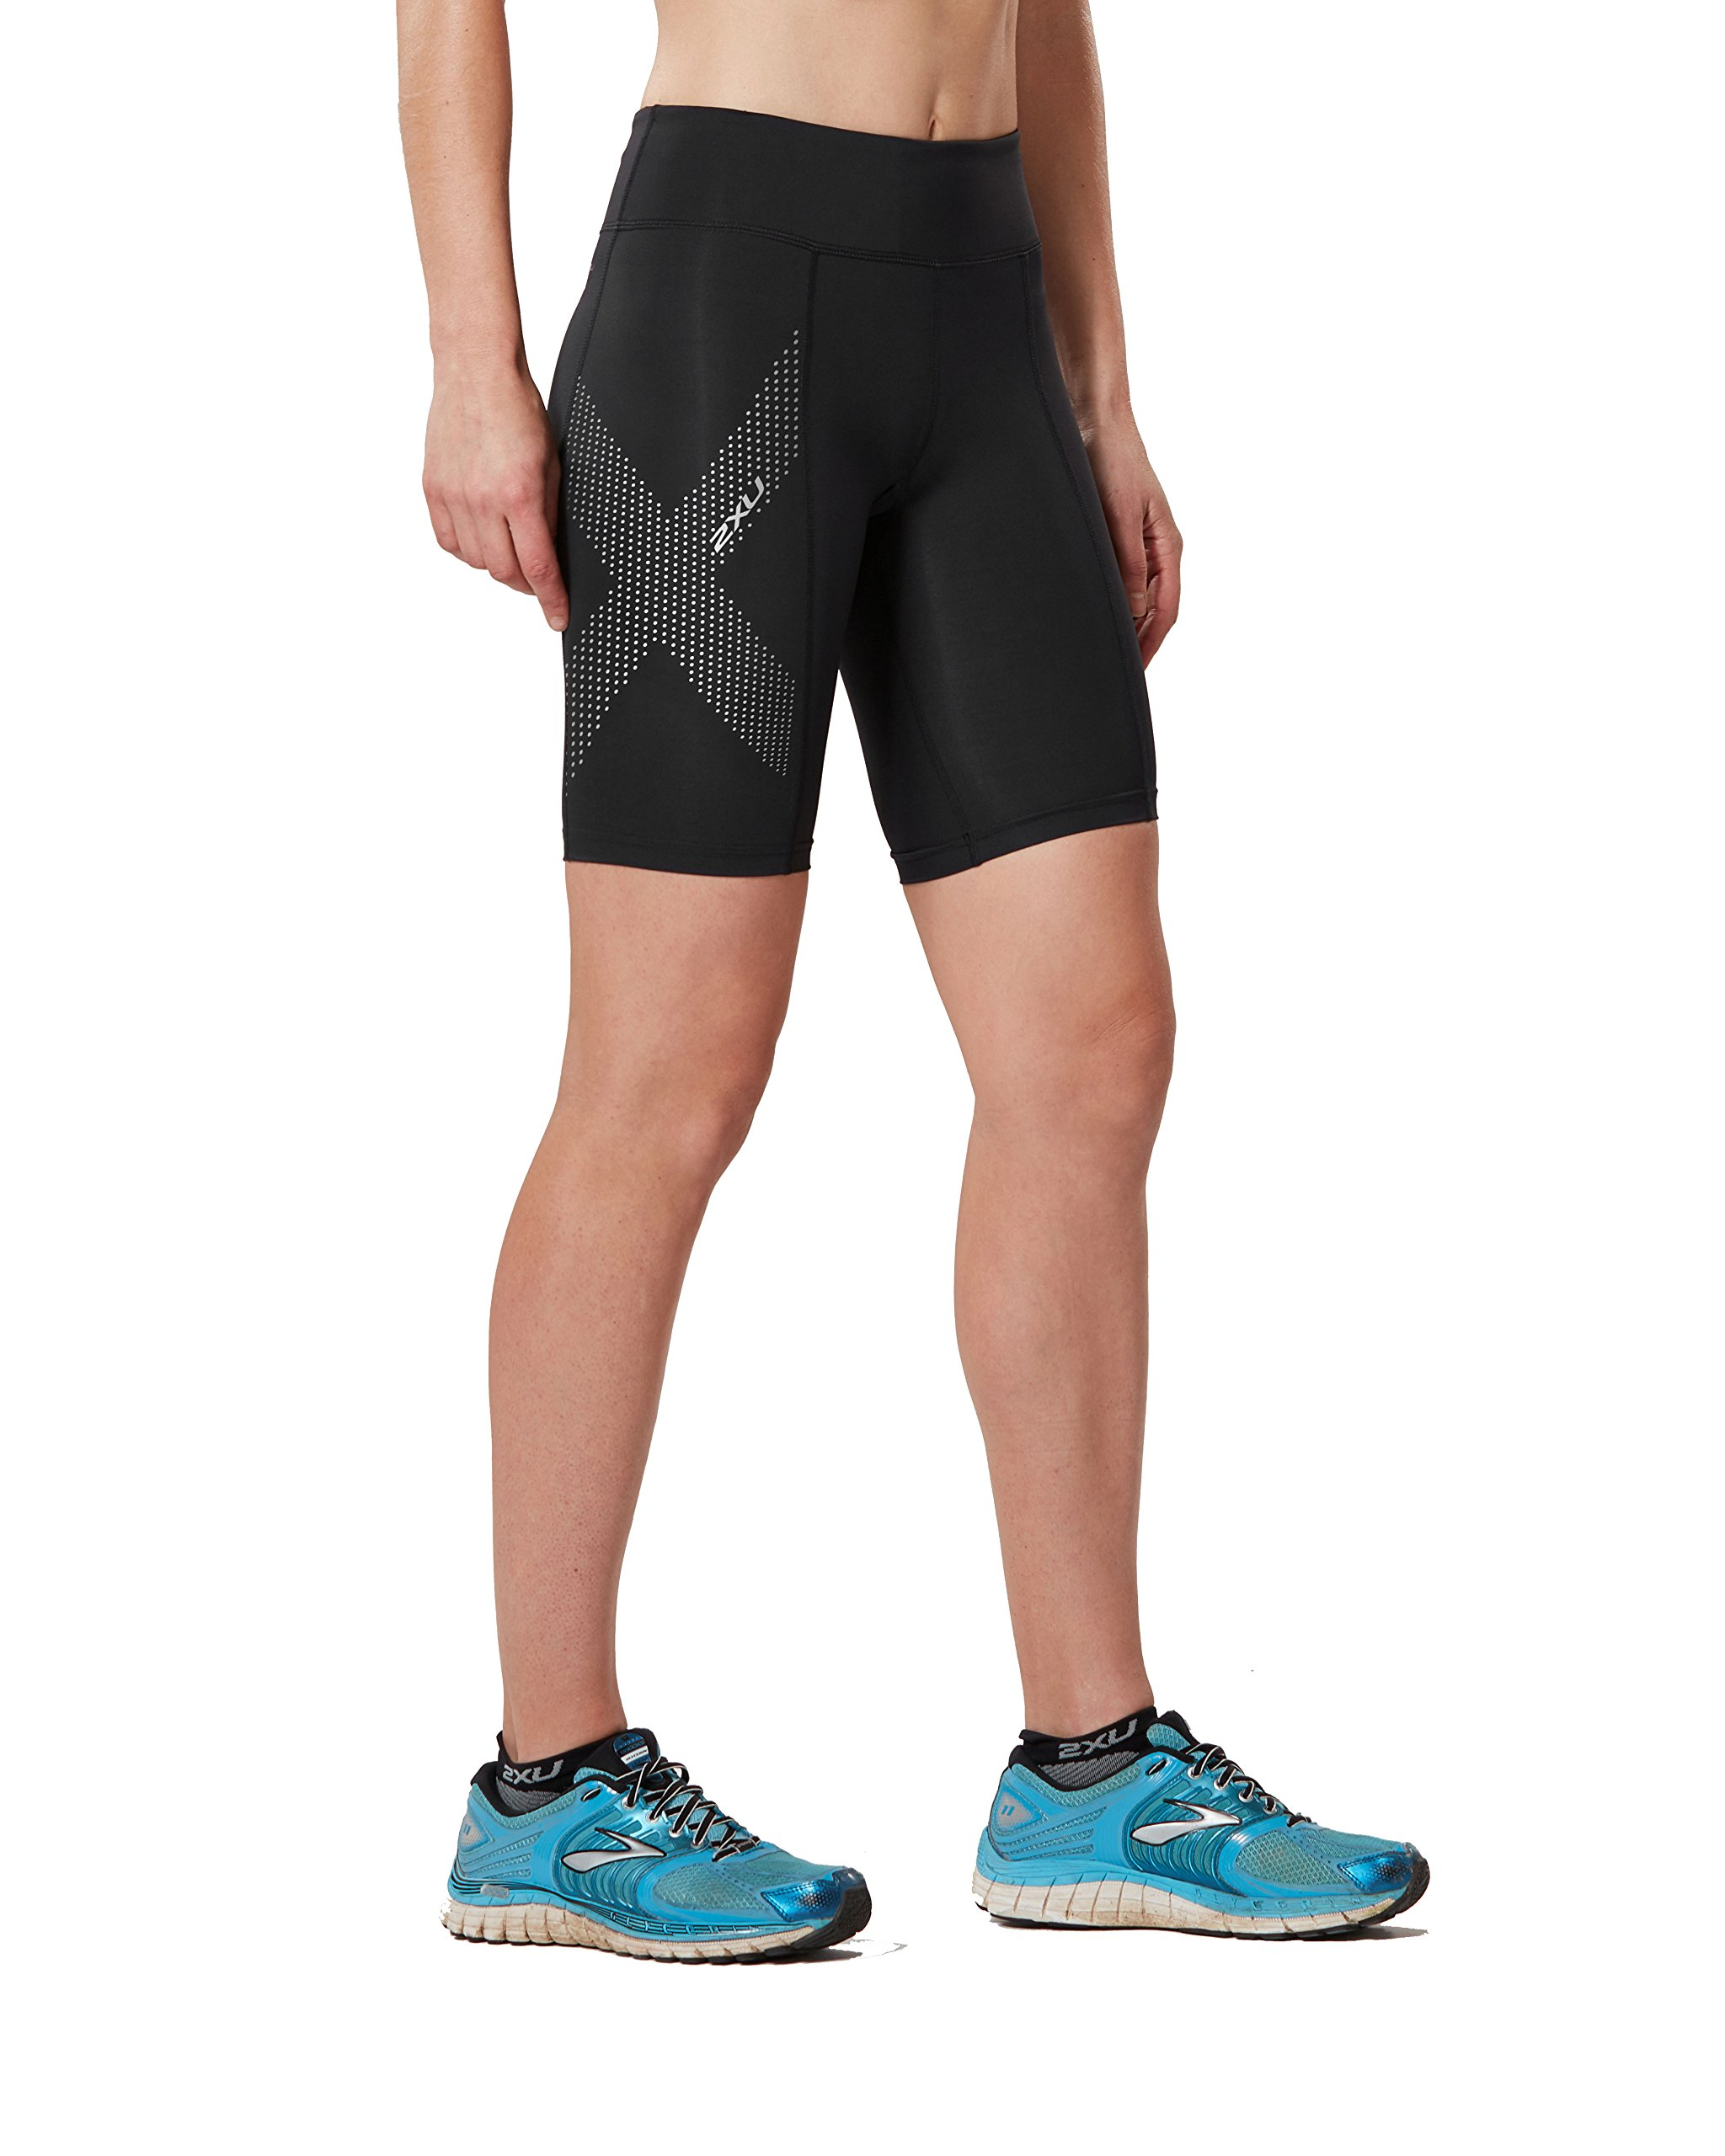 2XU Women's Mid-Rise Compression Shorts, Black/Dotted Reflective Logo, Small by 2XU (Image #1)